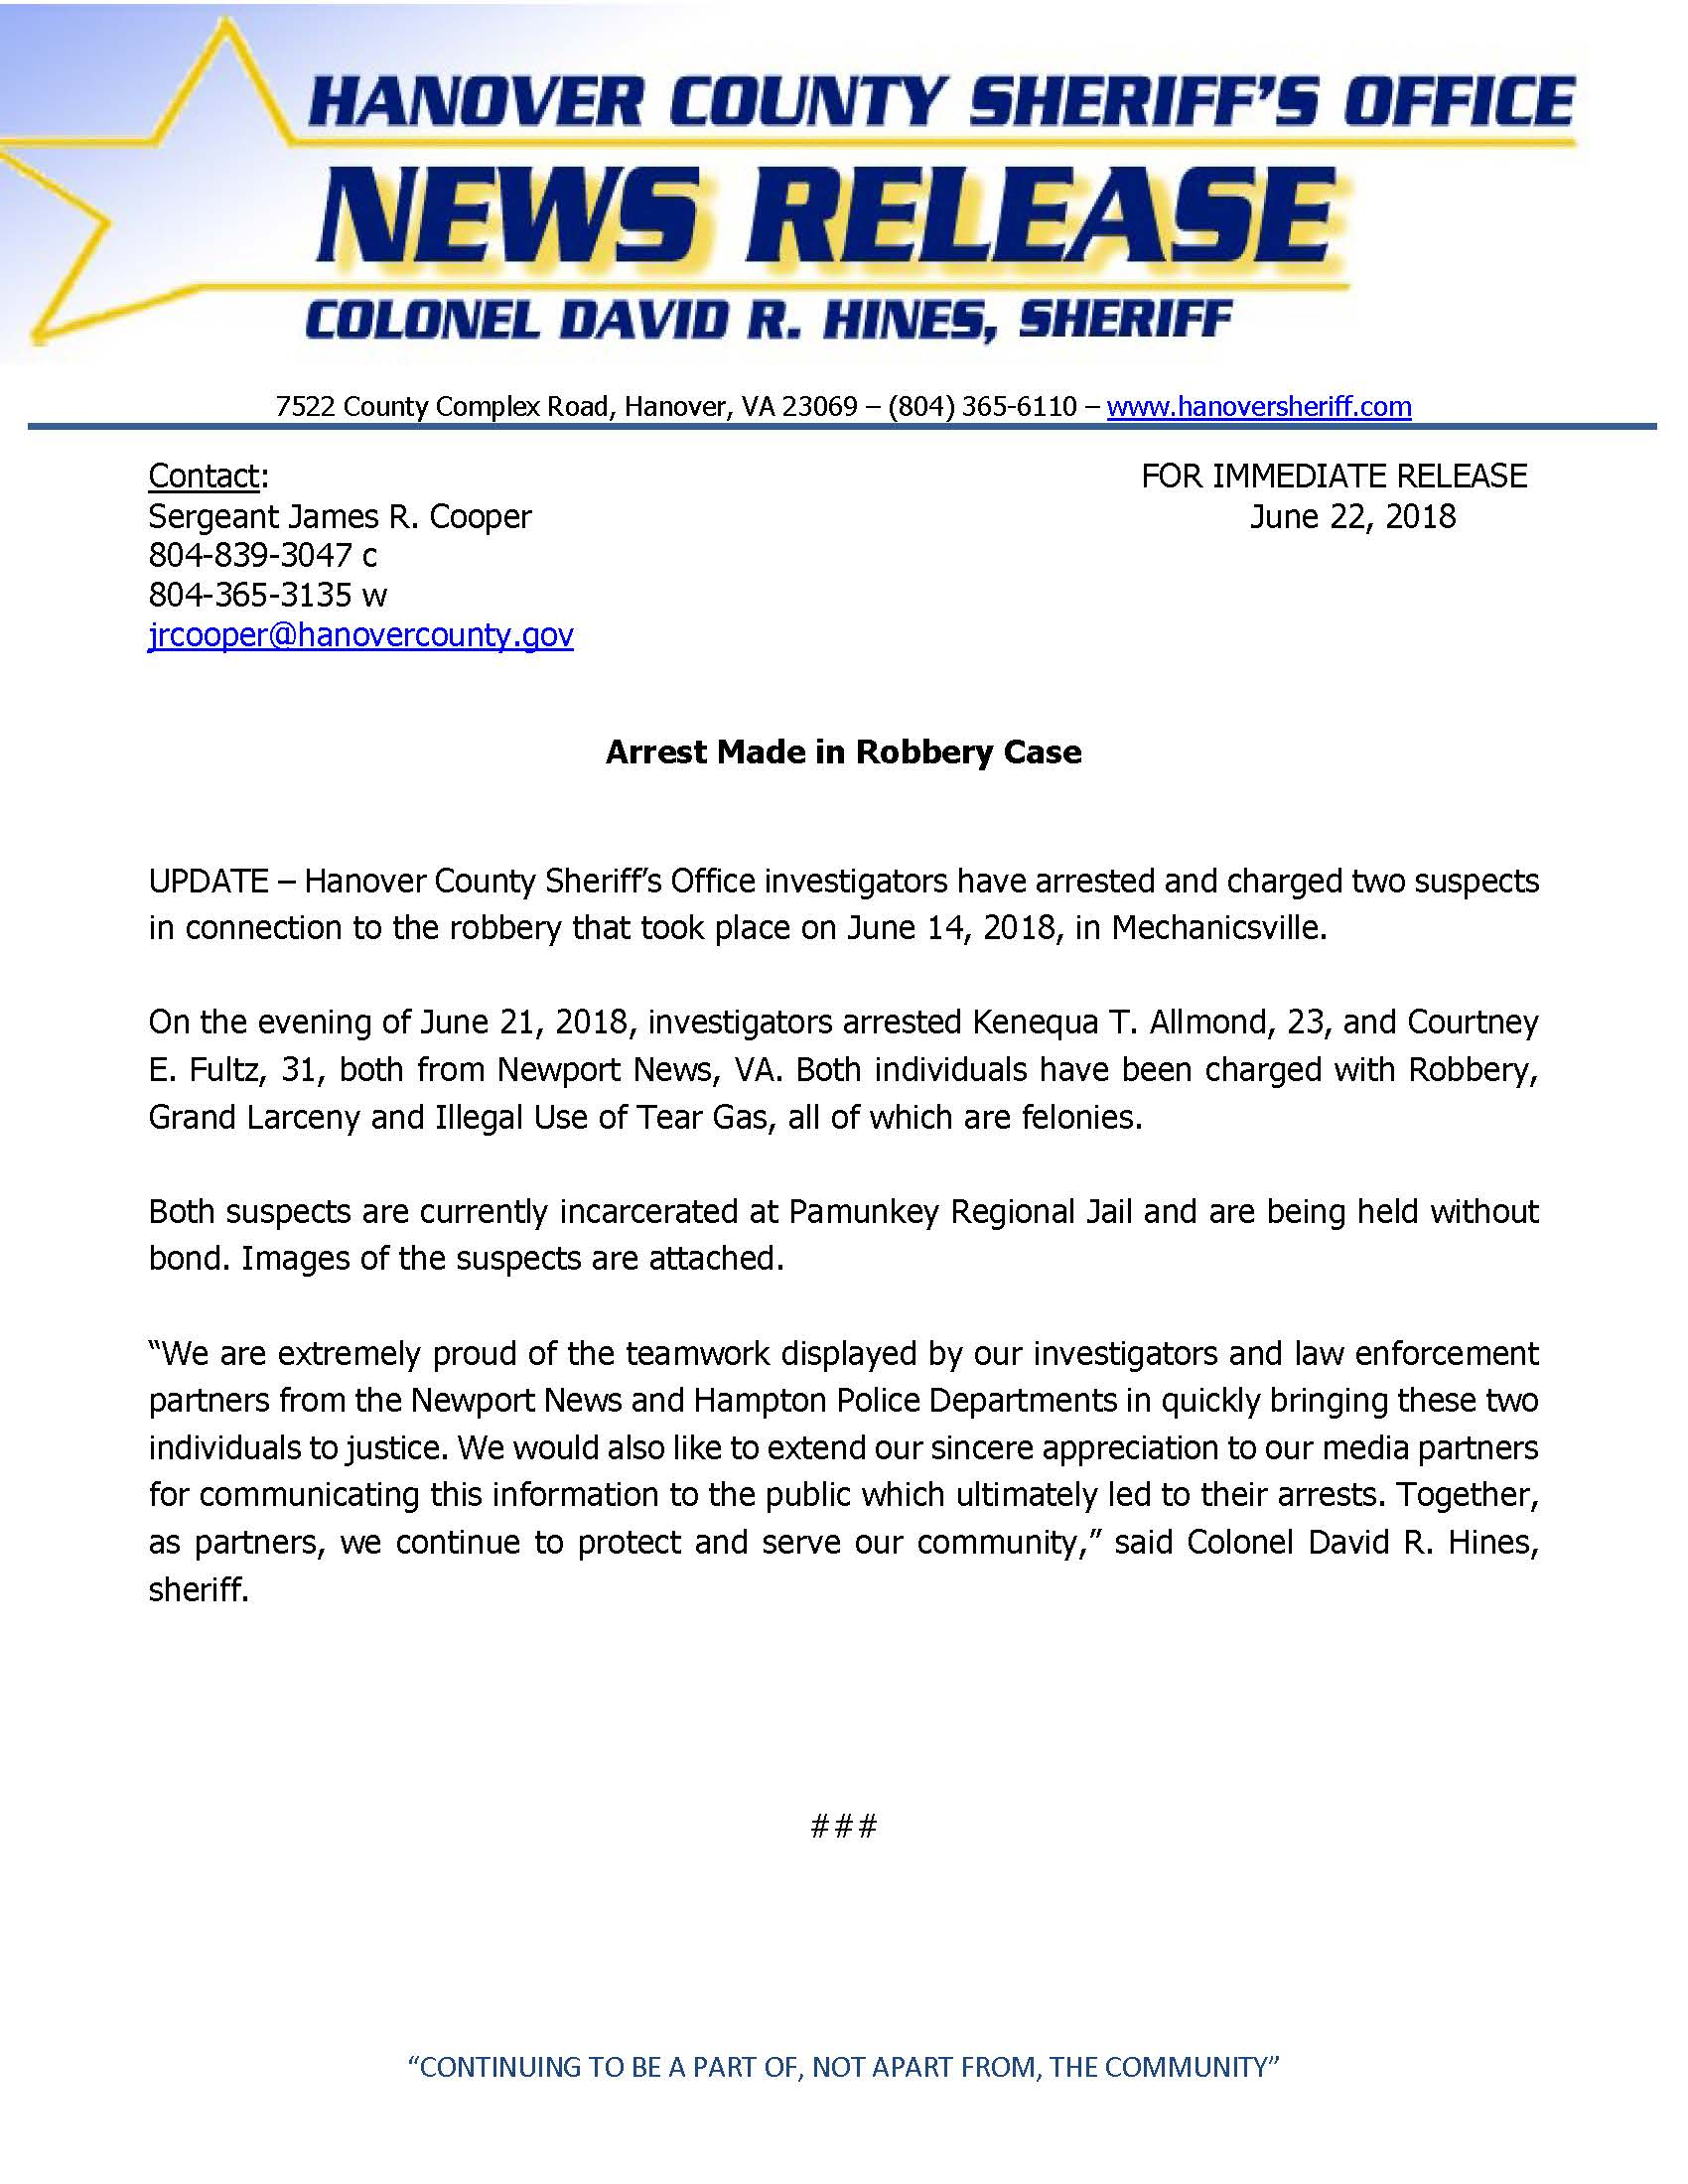 HCSO - UPDATE- Arrest Made in Robbery Case- June 22, 2018_Page_1